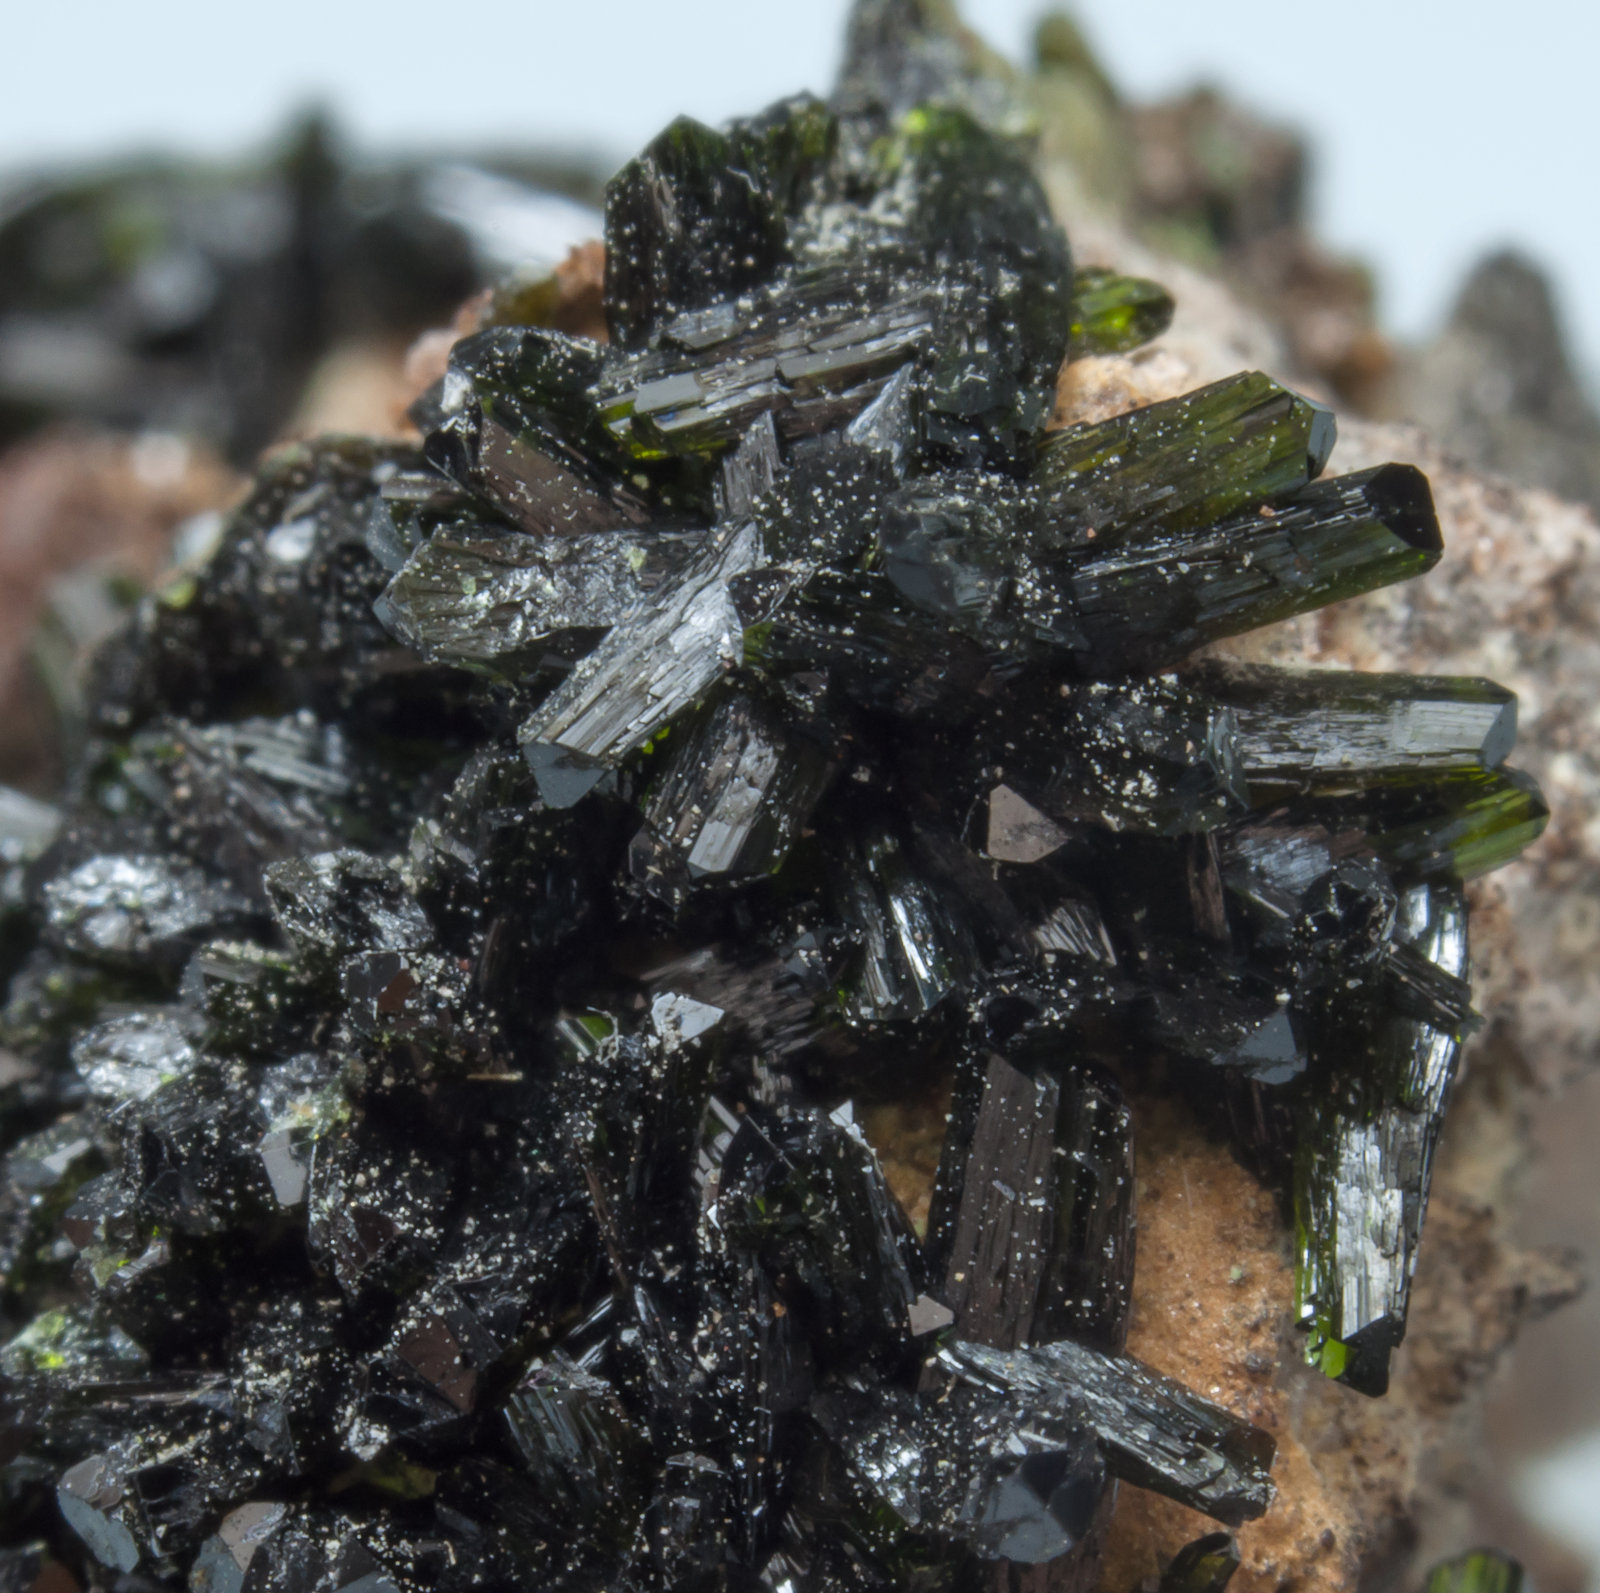 specimens/s_imagesAL2/Olivenite-TT51AL2d2.jpg